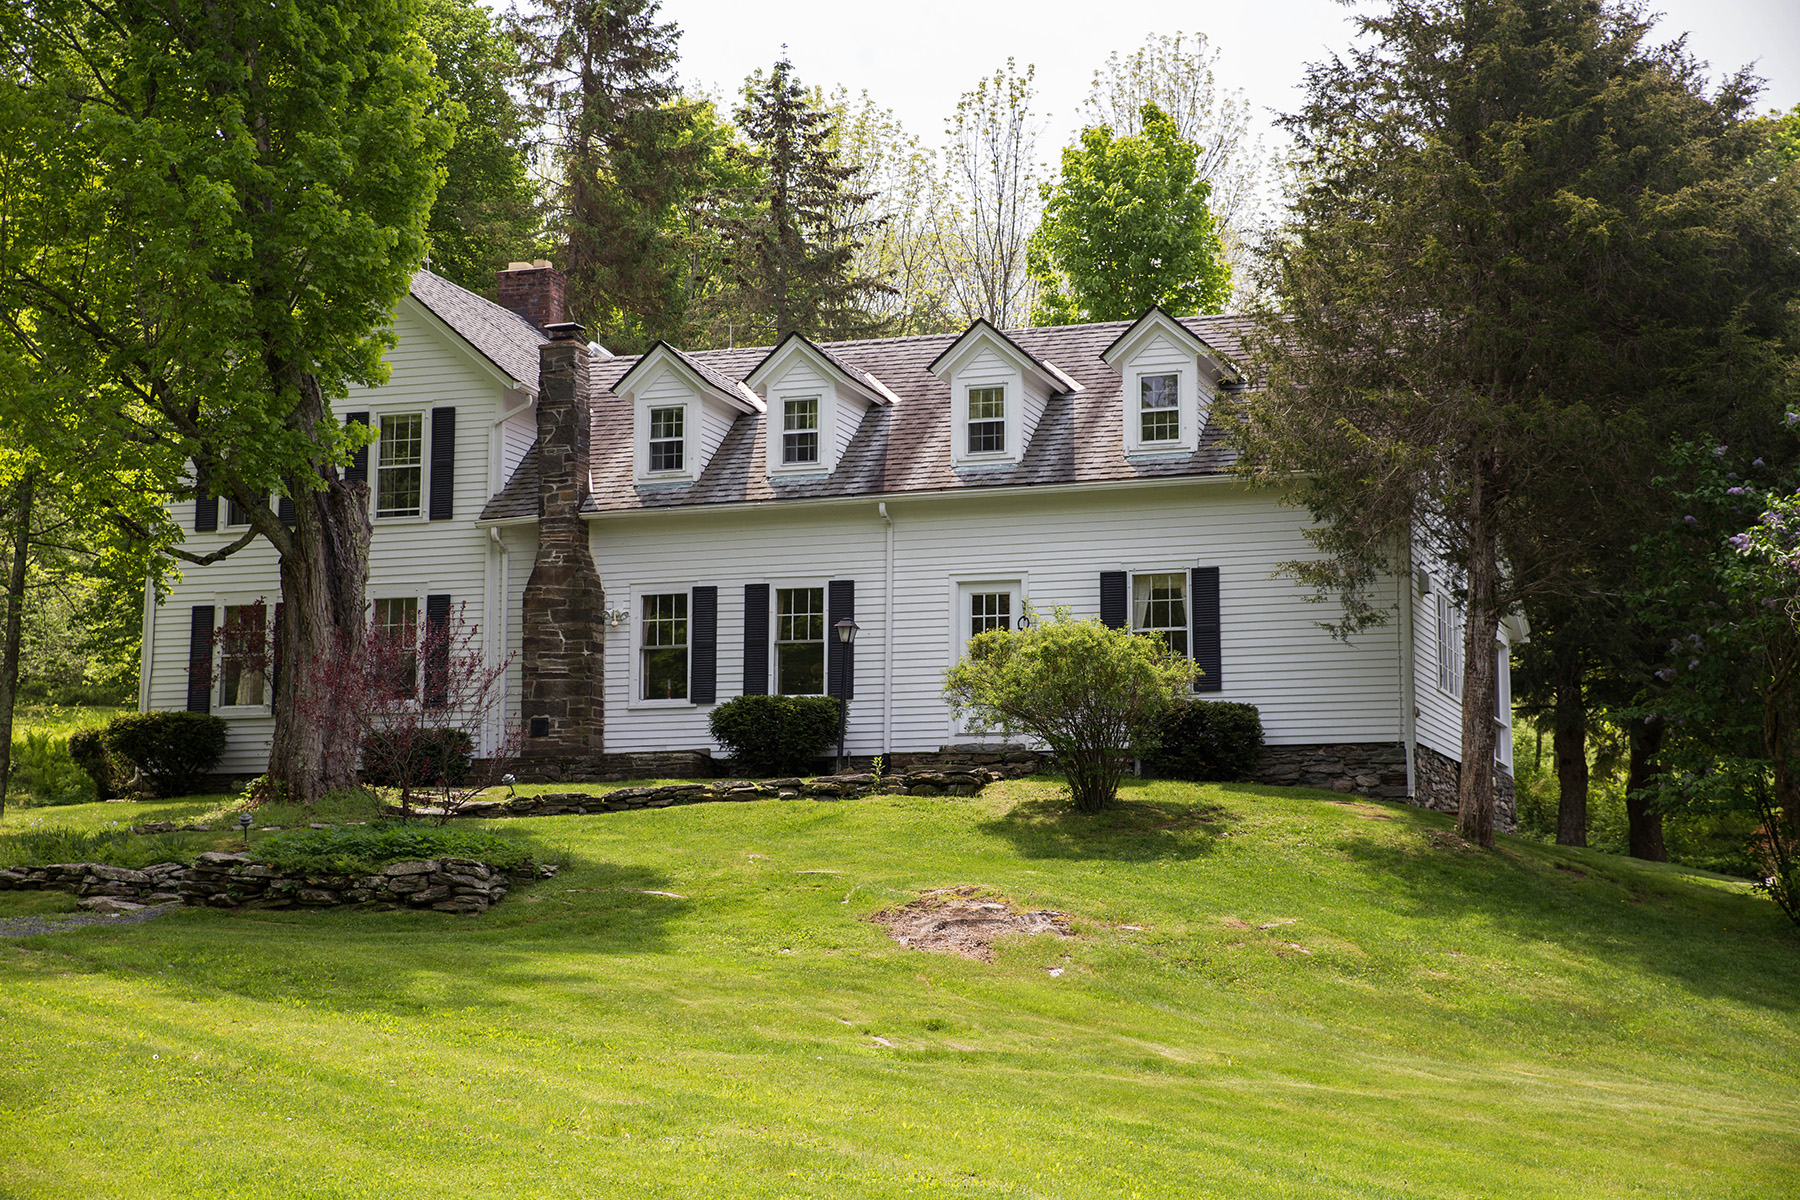 Single Family Home for Sale at Butternut Farm 359 Mckie Hollow Rd Cambridge, 12816 United States